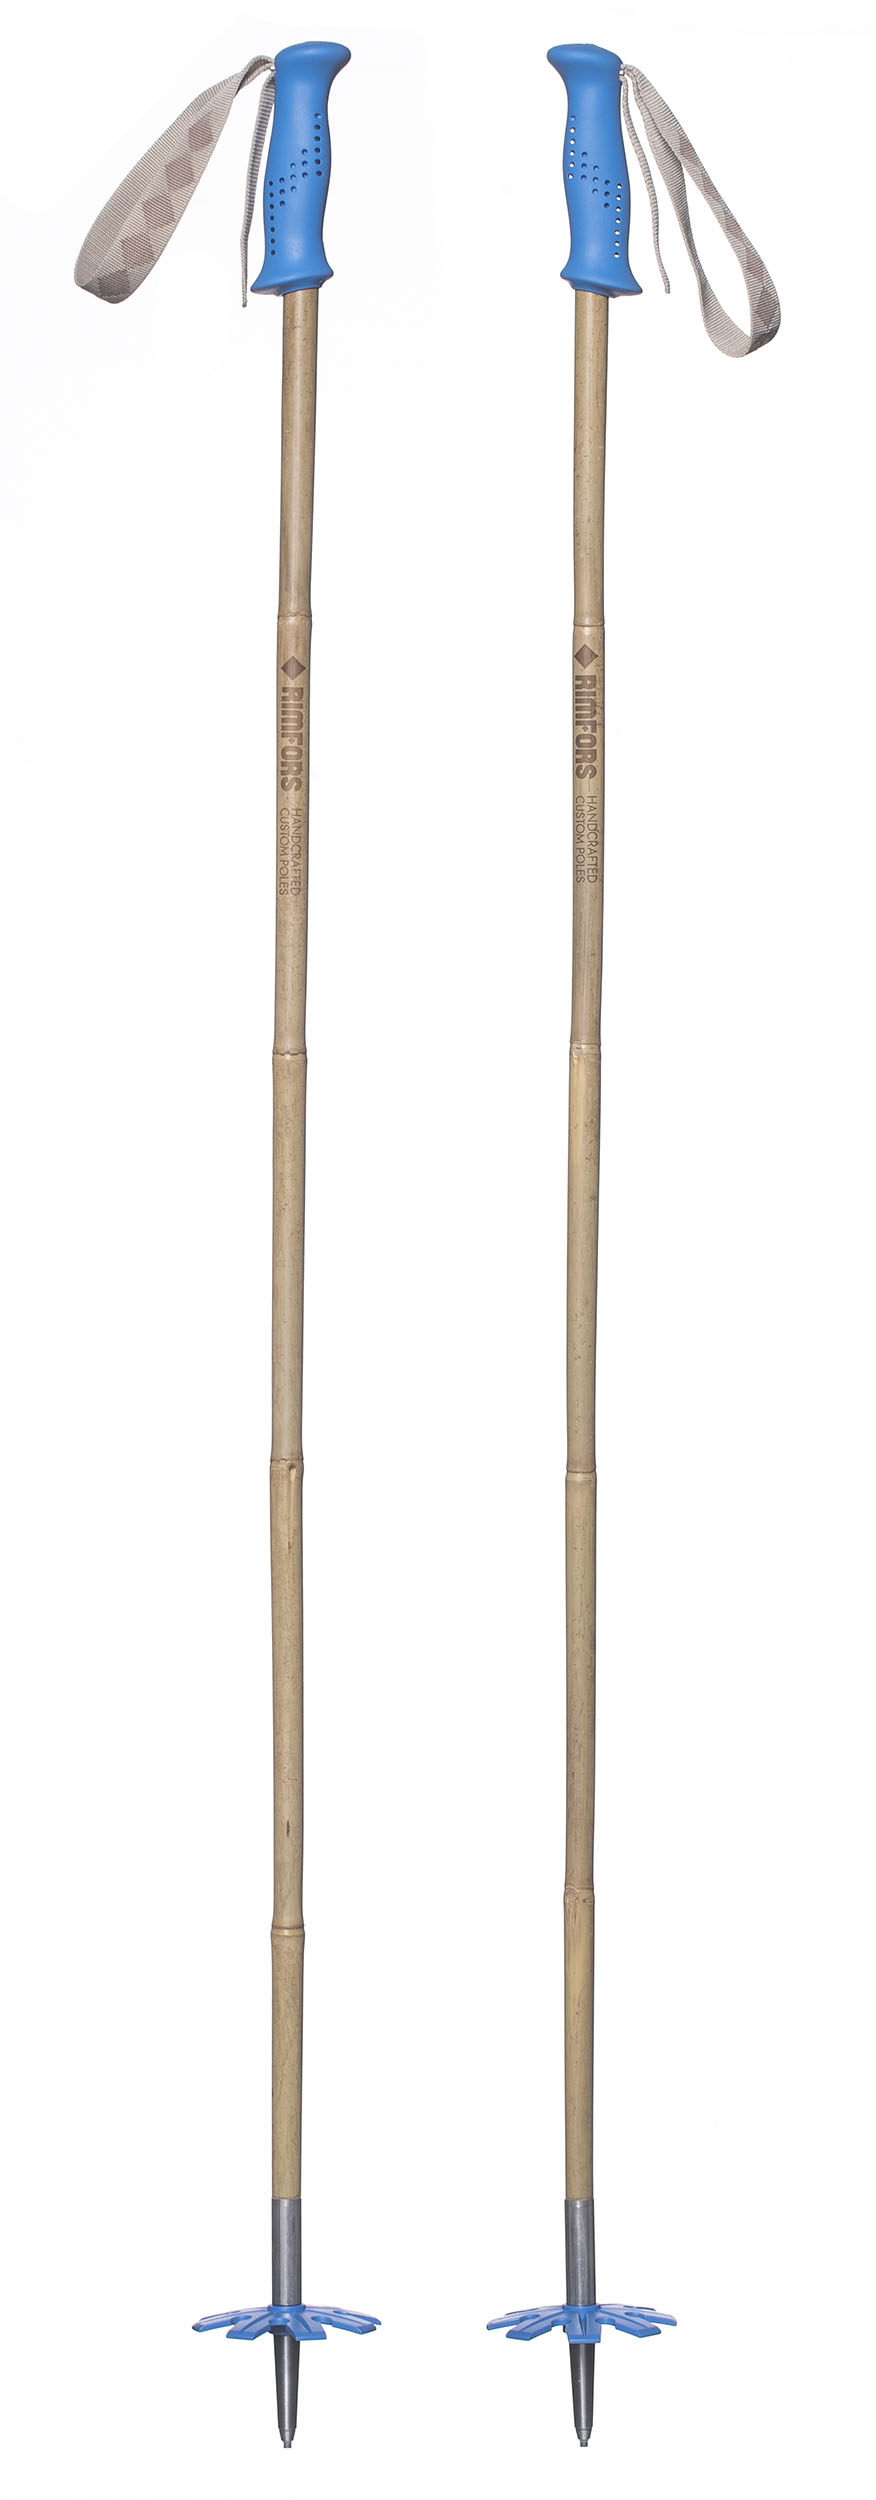 Bamboo ski poles with blue grips and baskets.